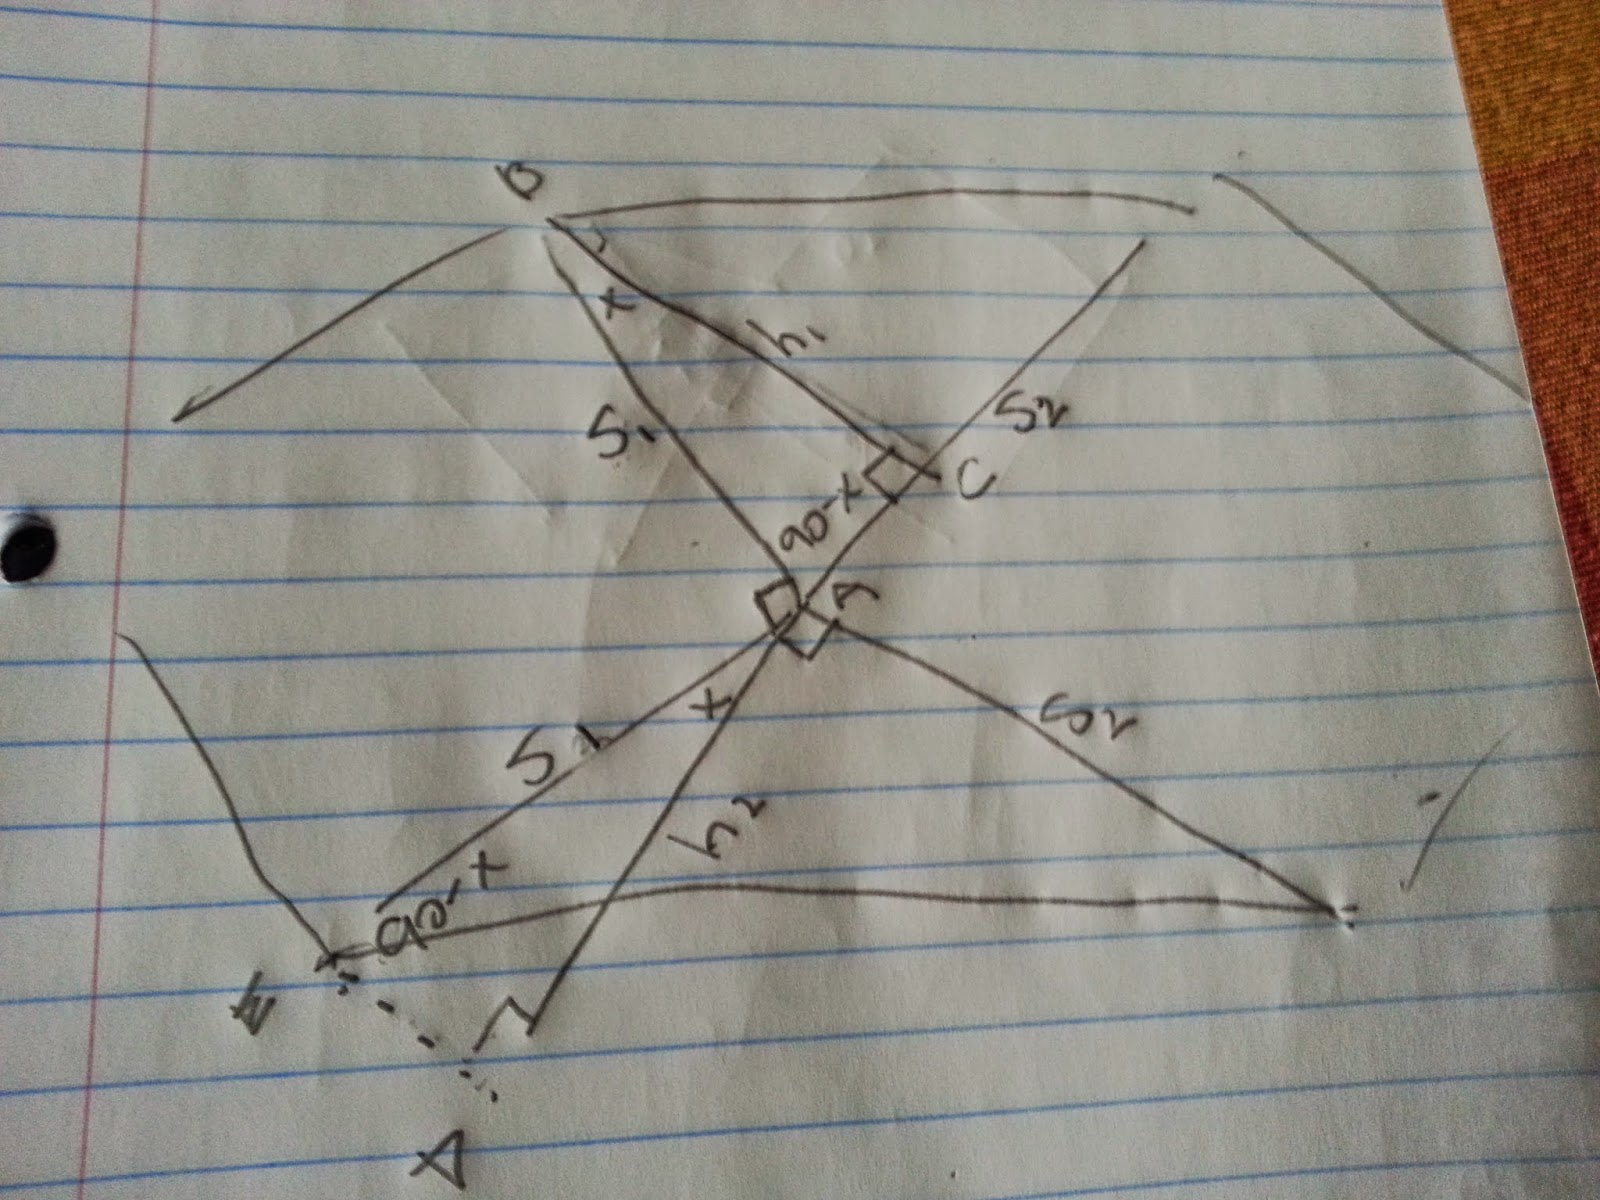 running a math club my experiences cool geometry problem let s look at the inner and lower triangle they already share a base let s pick the square sides of length